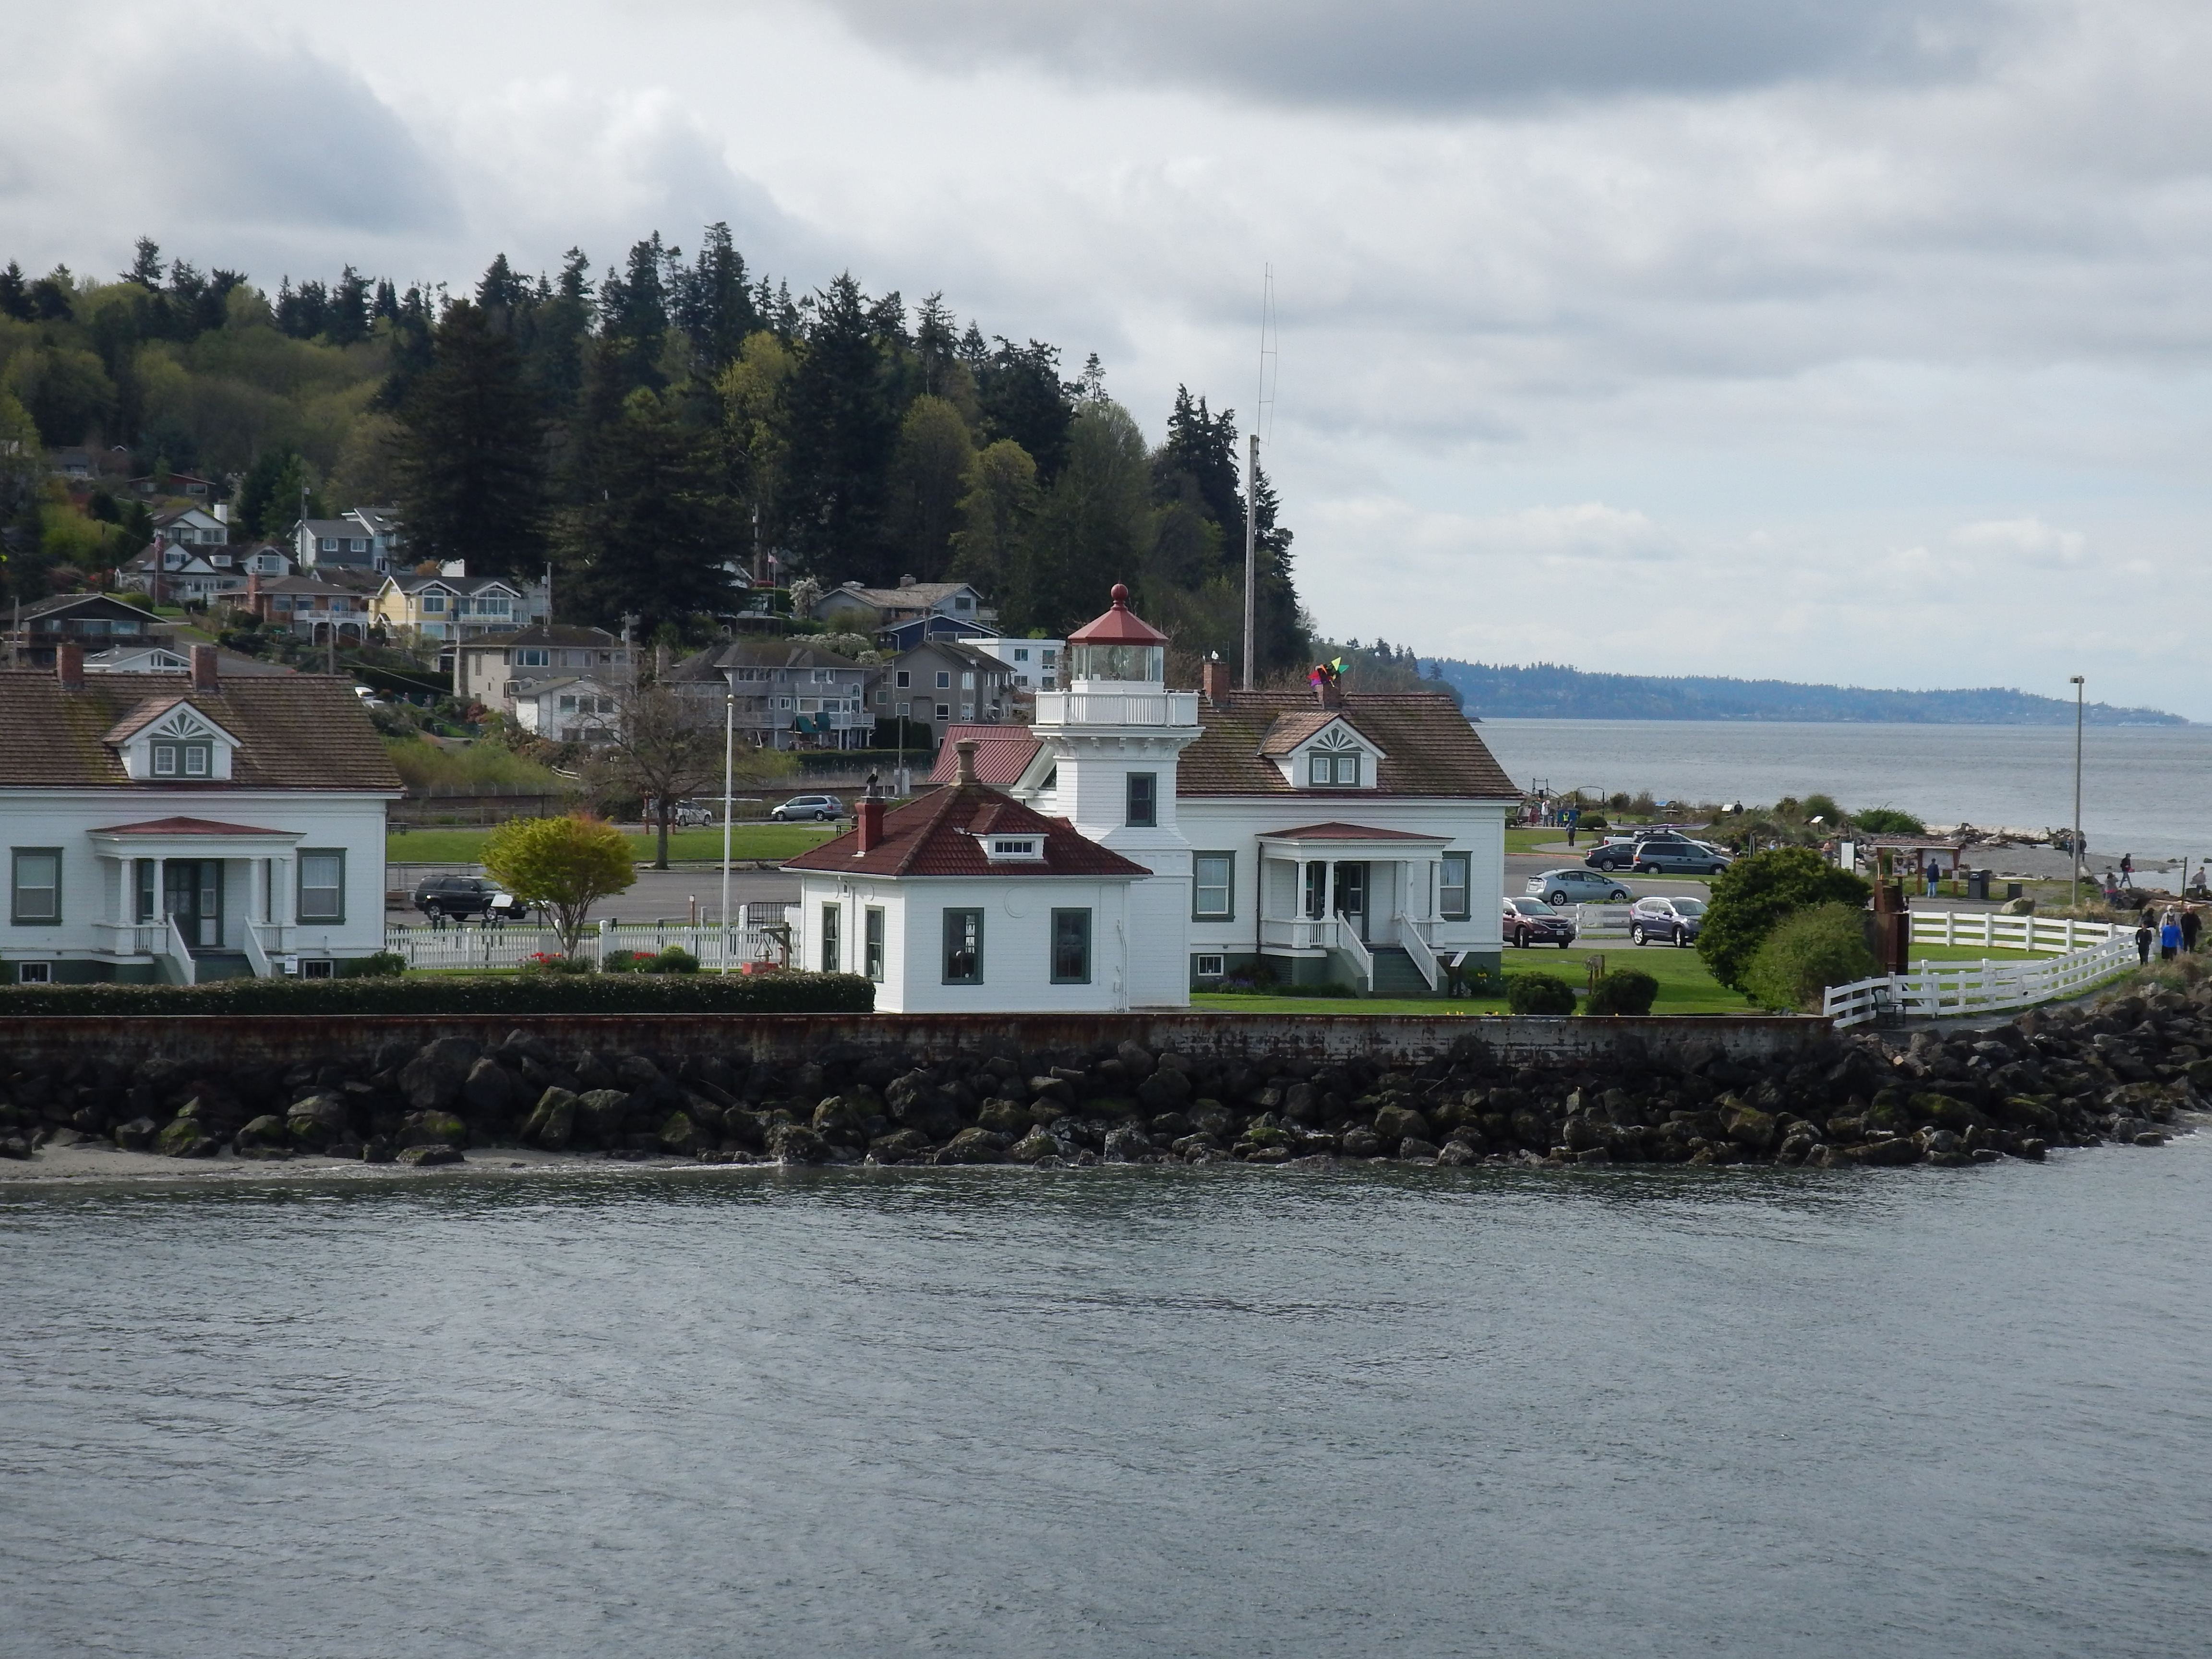 Saratoga passage salish sea journal mukilteo lighthouse geenschuldenfo Image collections